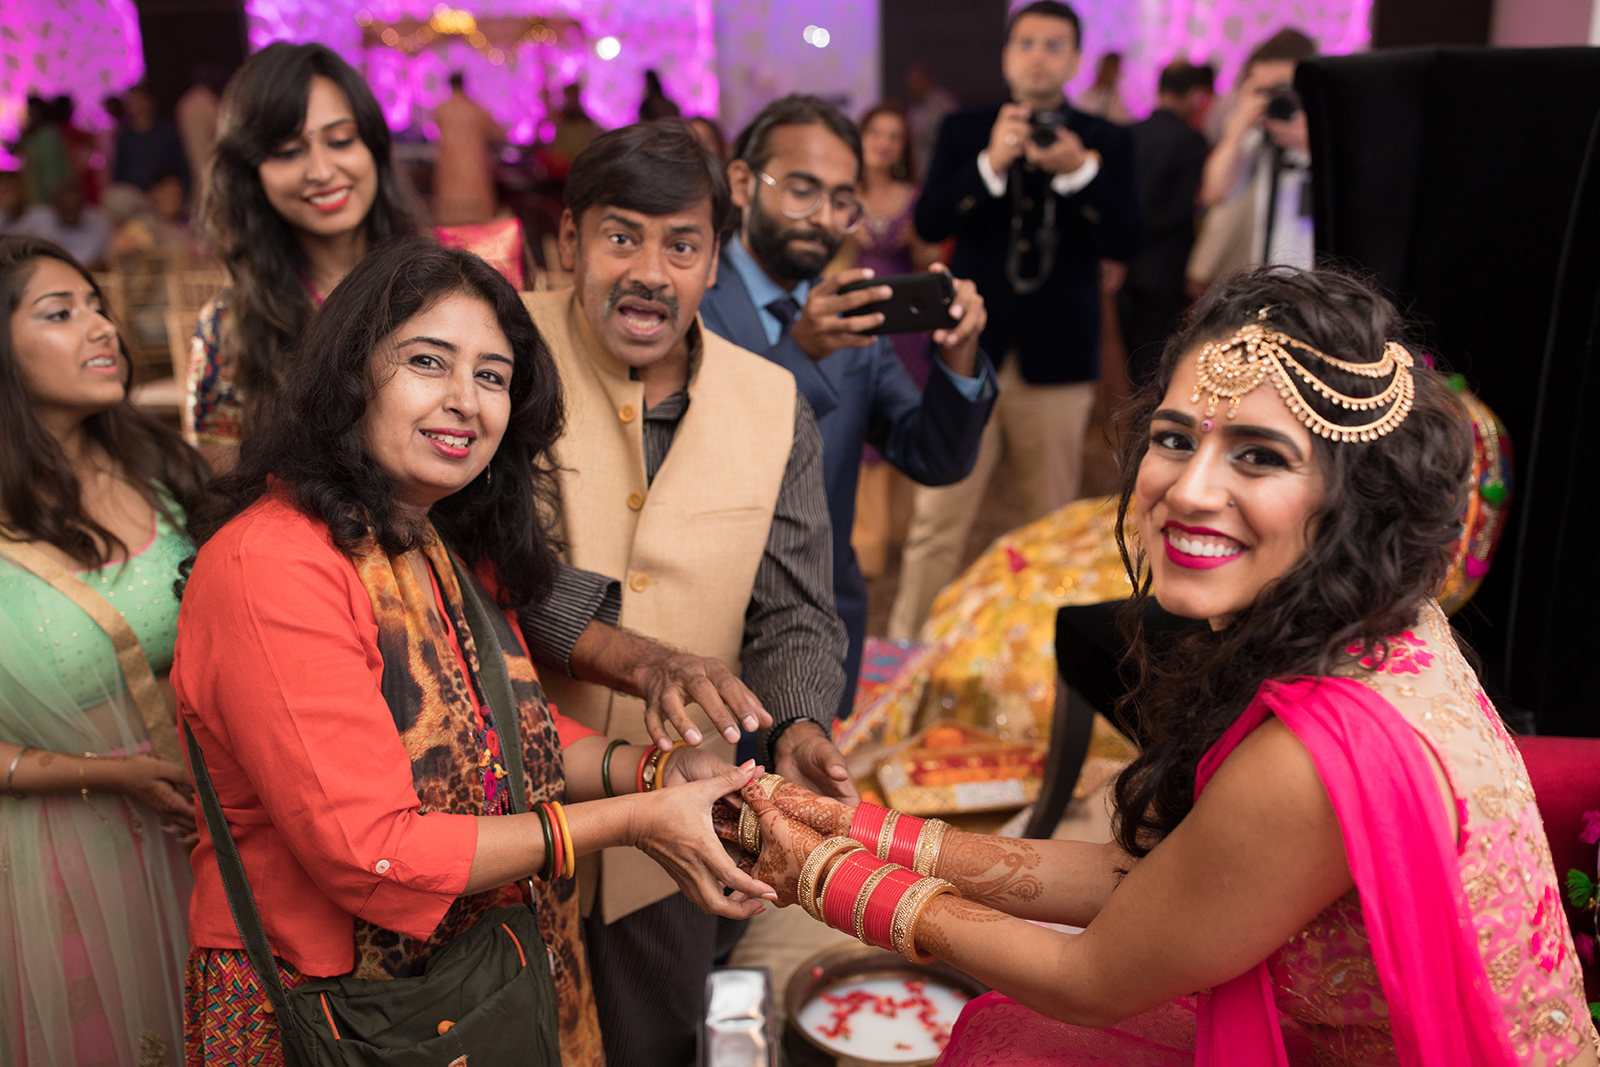 Le Cape Weddings - Sumeet and Chavi - Sangeet --73.jpg